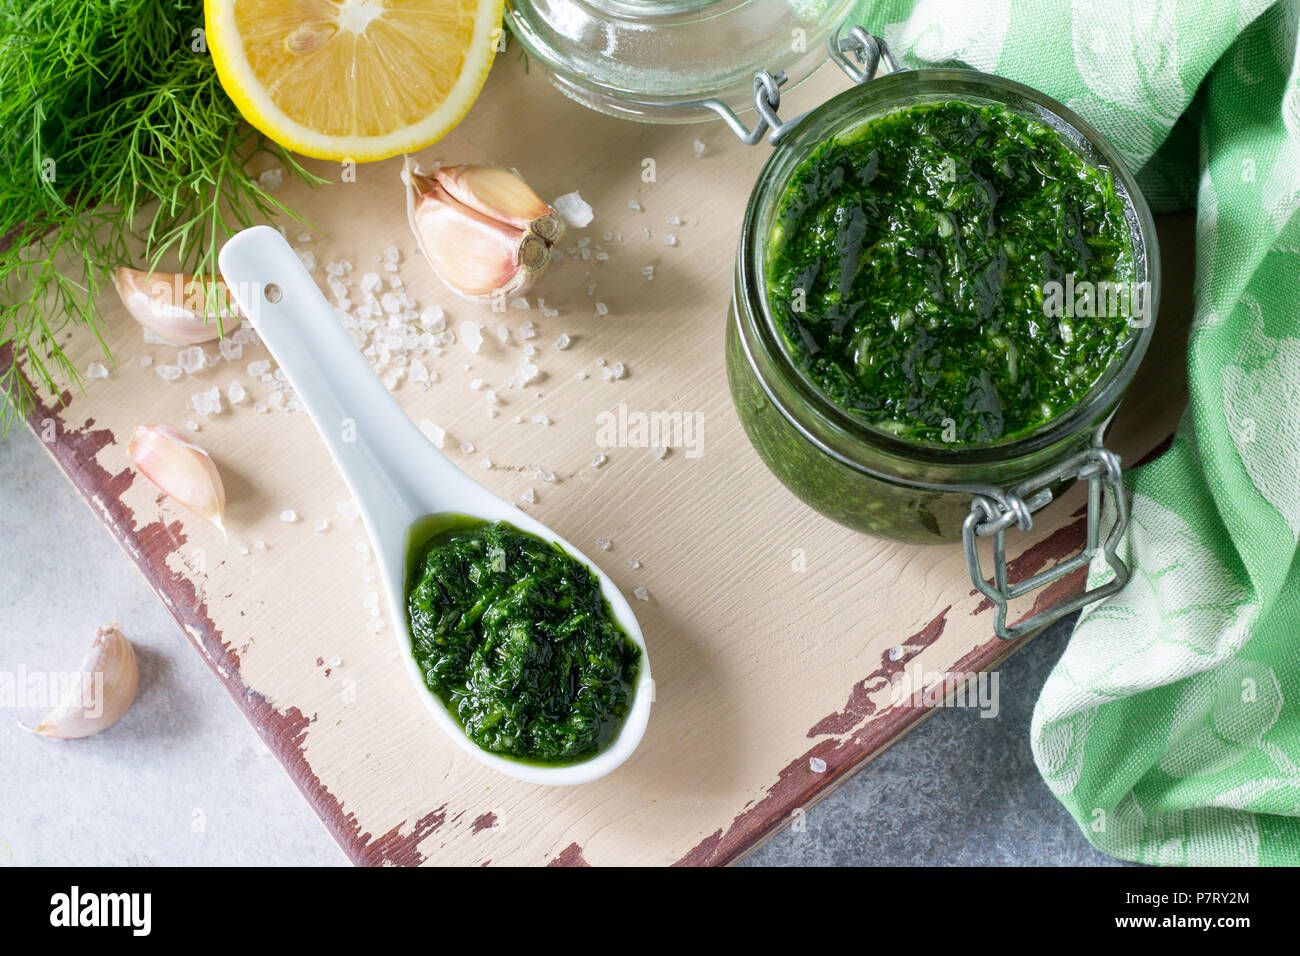 Preserving sauce dill with garlic and olive oil on the kitchen wooden background. - Stock Image